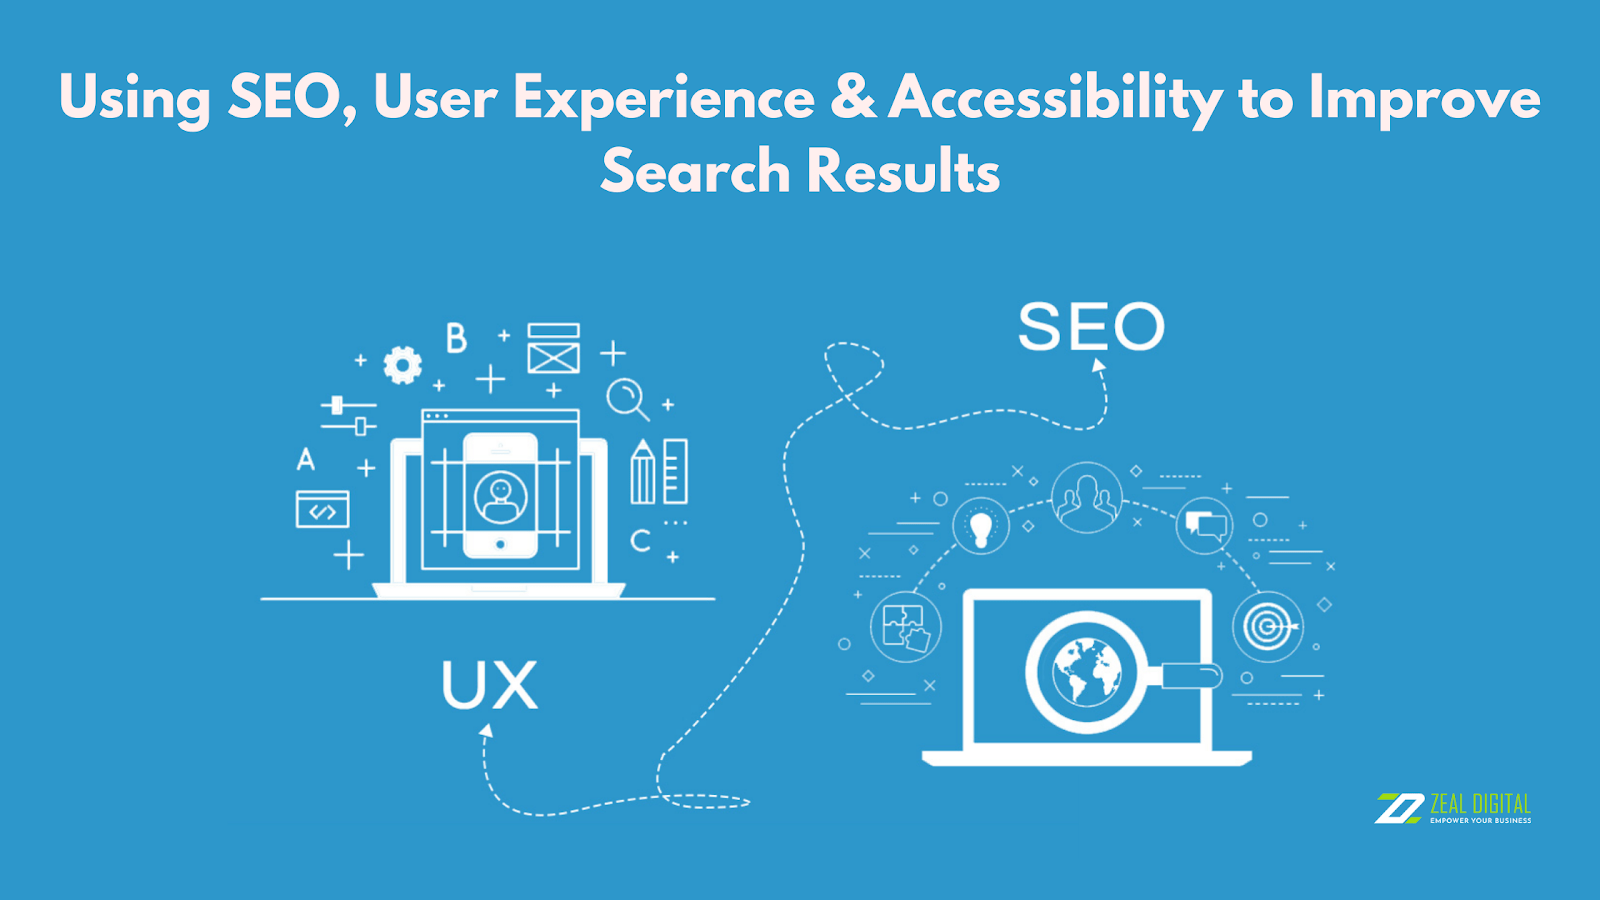 Using SEO, User Experience & Accessibility to Improve Search Results